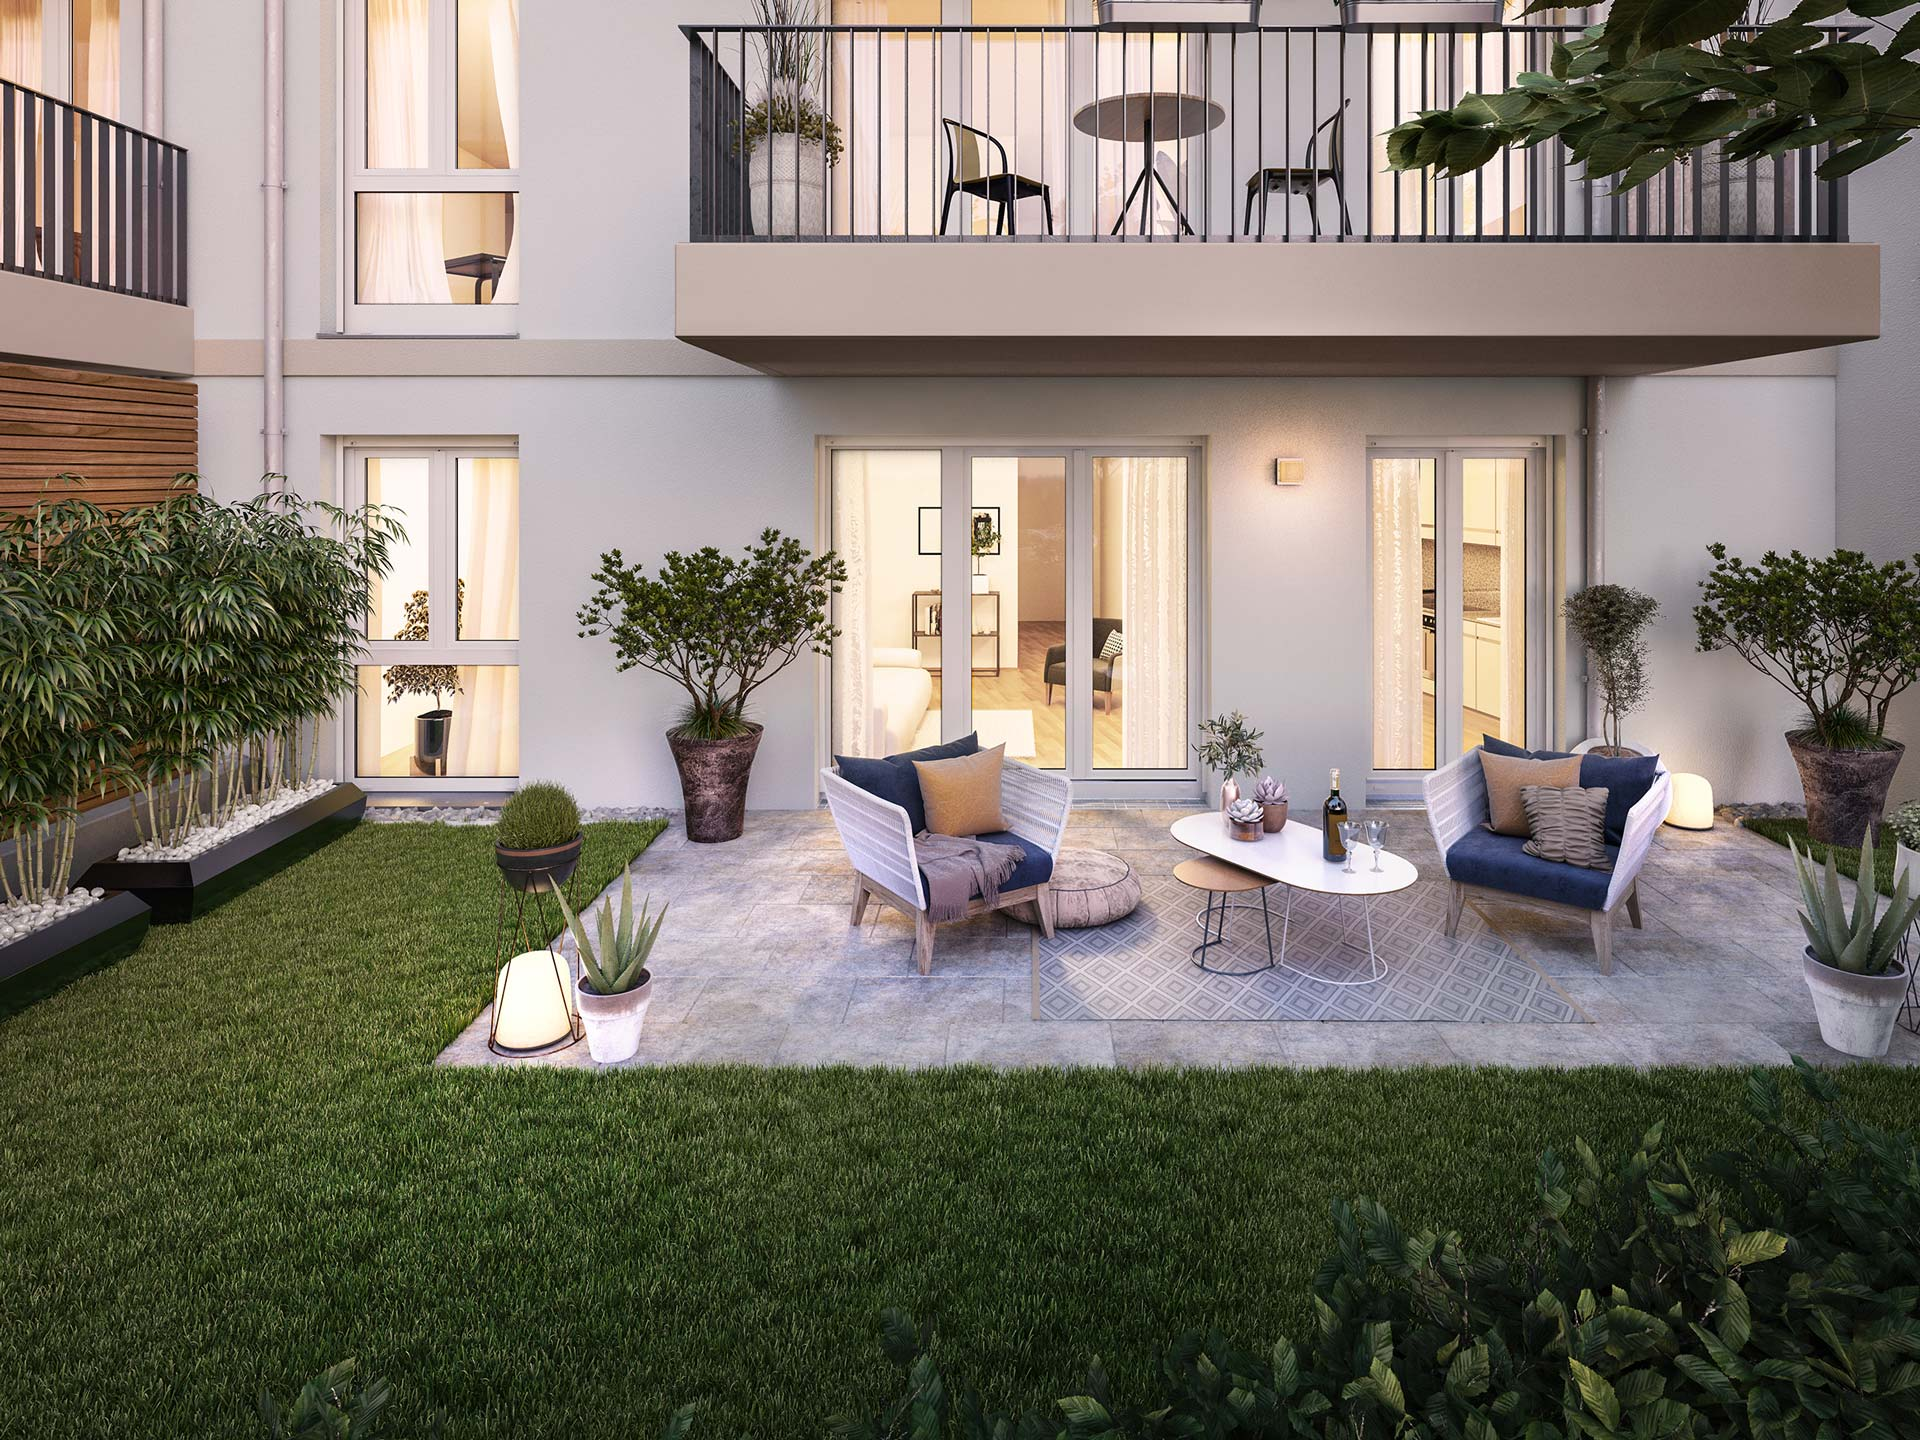 Garden apartment with cosy terrace